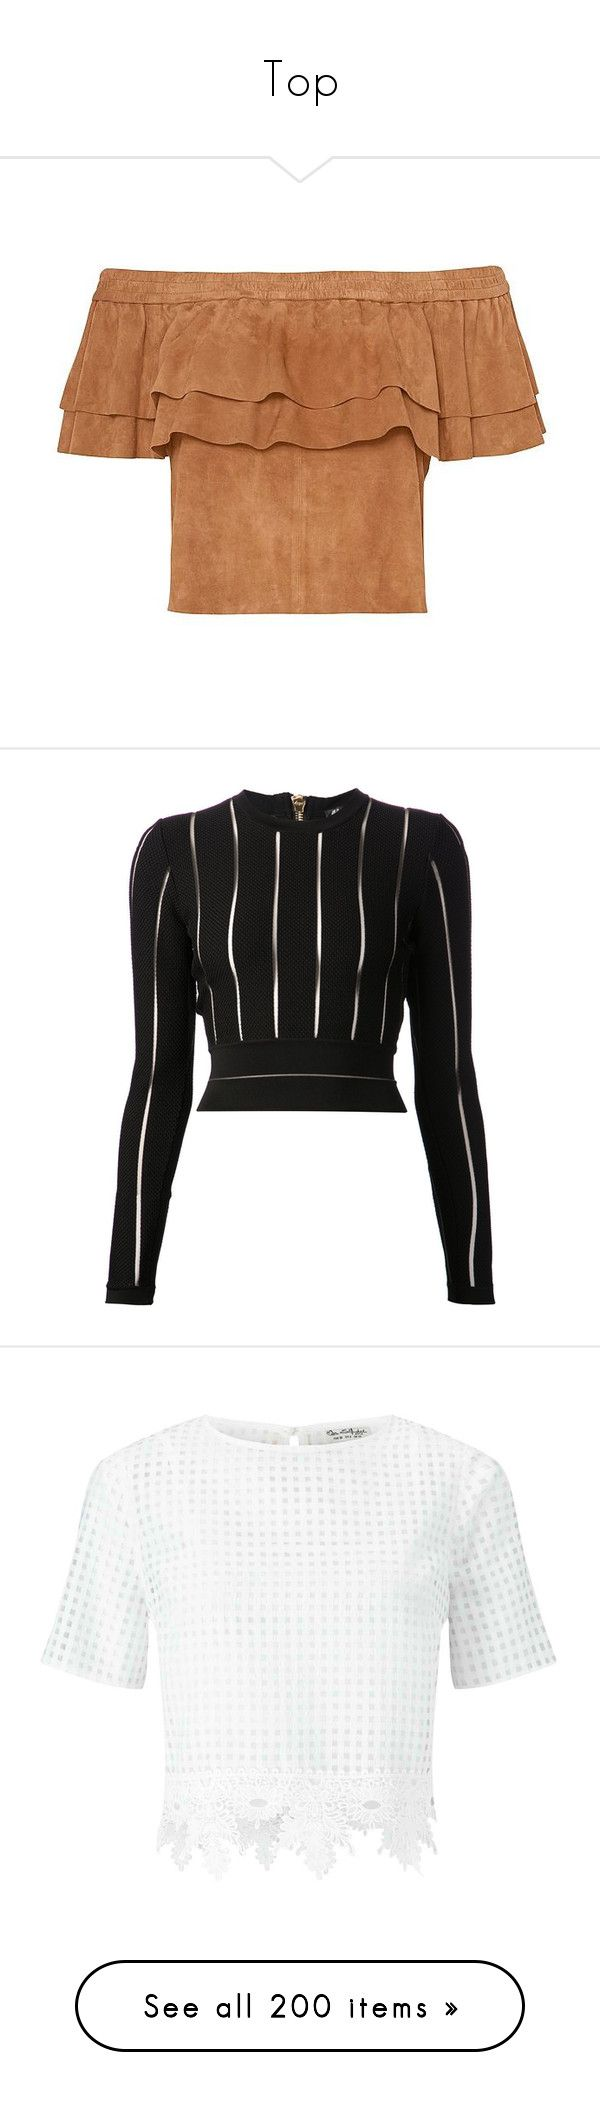 """""""Top"""" by laumariborche ❤ liked on Polyvore featuring tops, shirts, crop tops, blouses, blusas, off the shoulder shirts, ruffle crop top, beige crop top, ruffle top and off the shoulder ruffle top"""